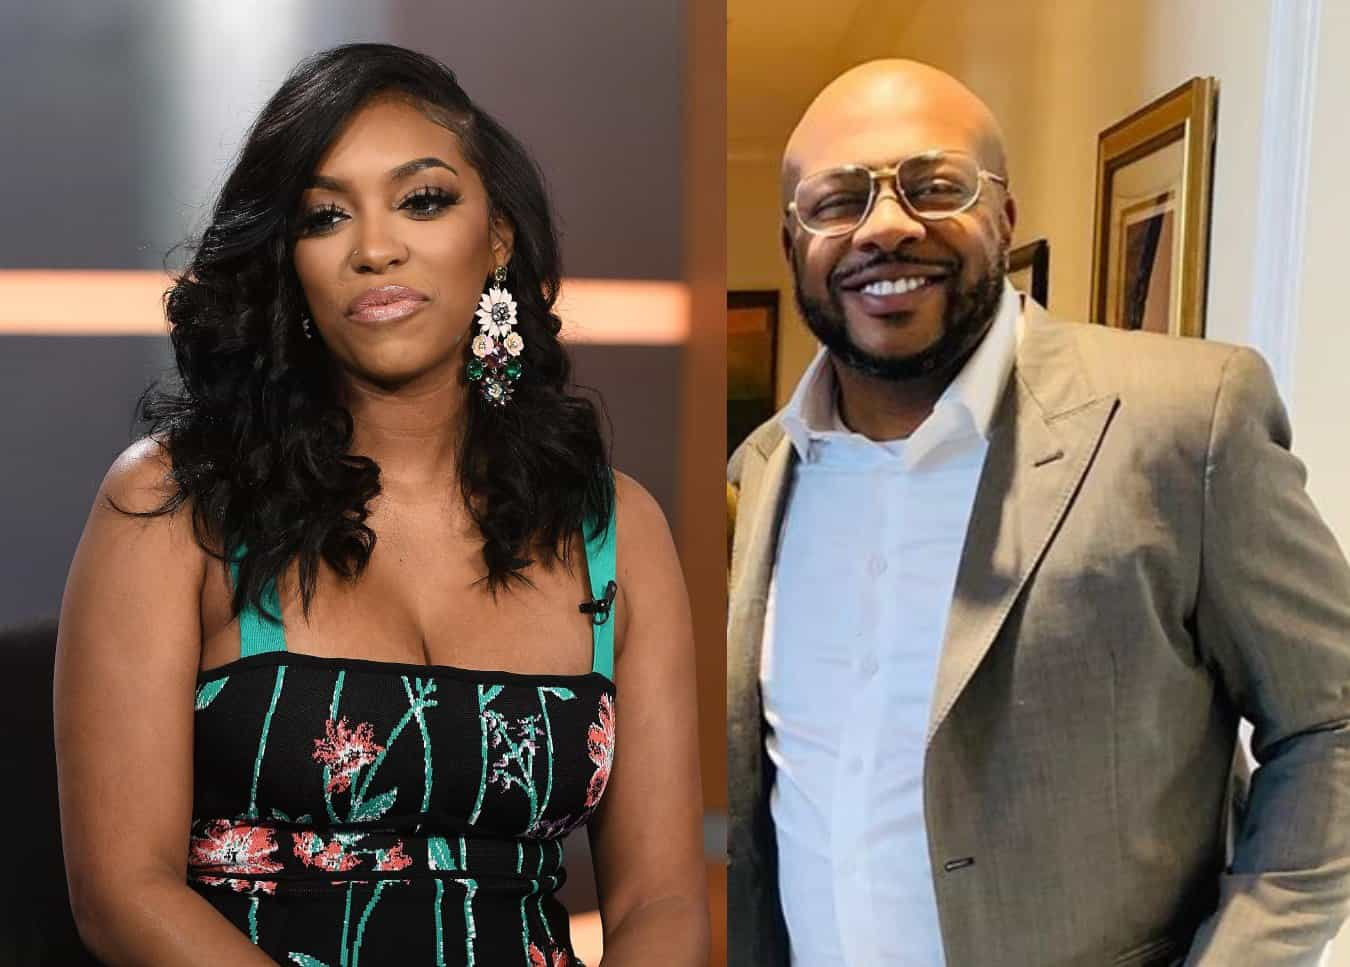 RHOA Star Porsha Williams Hints at Trouble With Fiancé Dennis McKinley, Addresses Photos of Him Out With Four Women at 4 A.M.